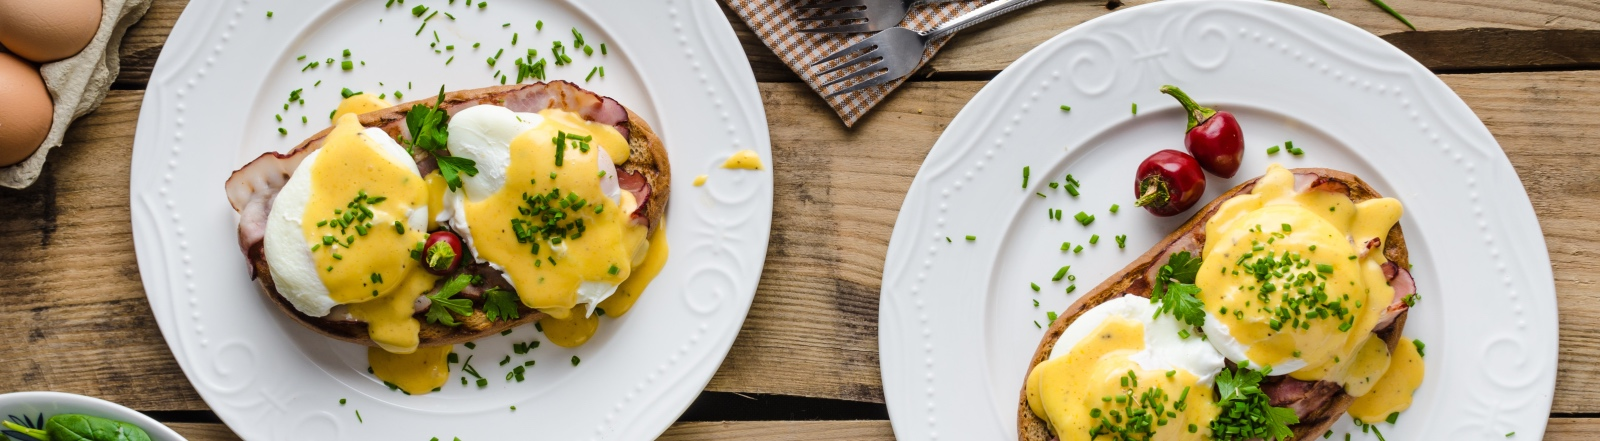 Eggs Benedict Is The Undisputed G.O.A.T. Of The Brunch Menu And You're Doing Yourself A Disservice If You Disagree